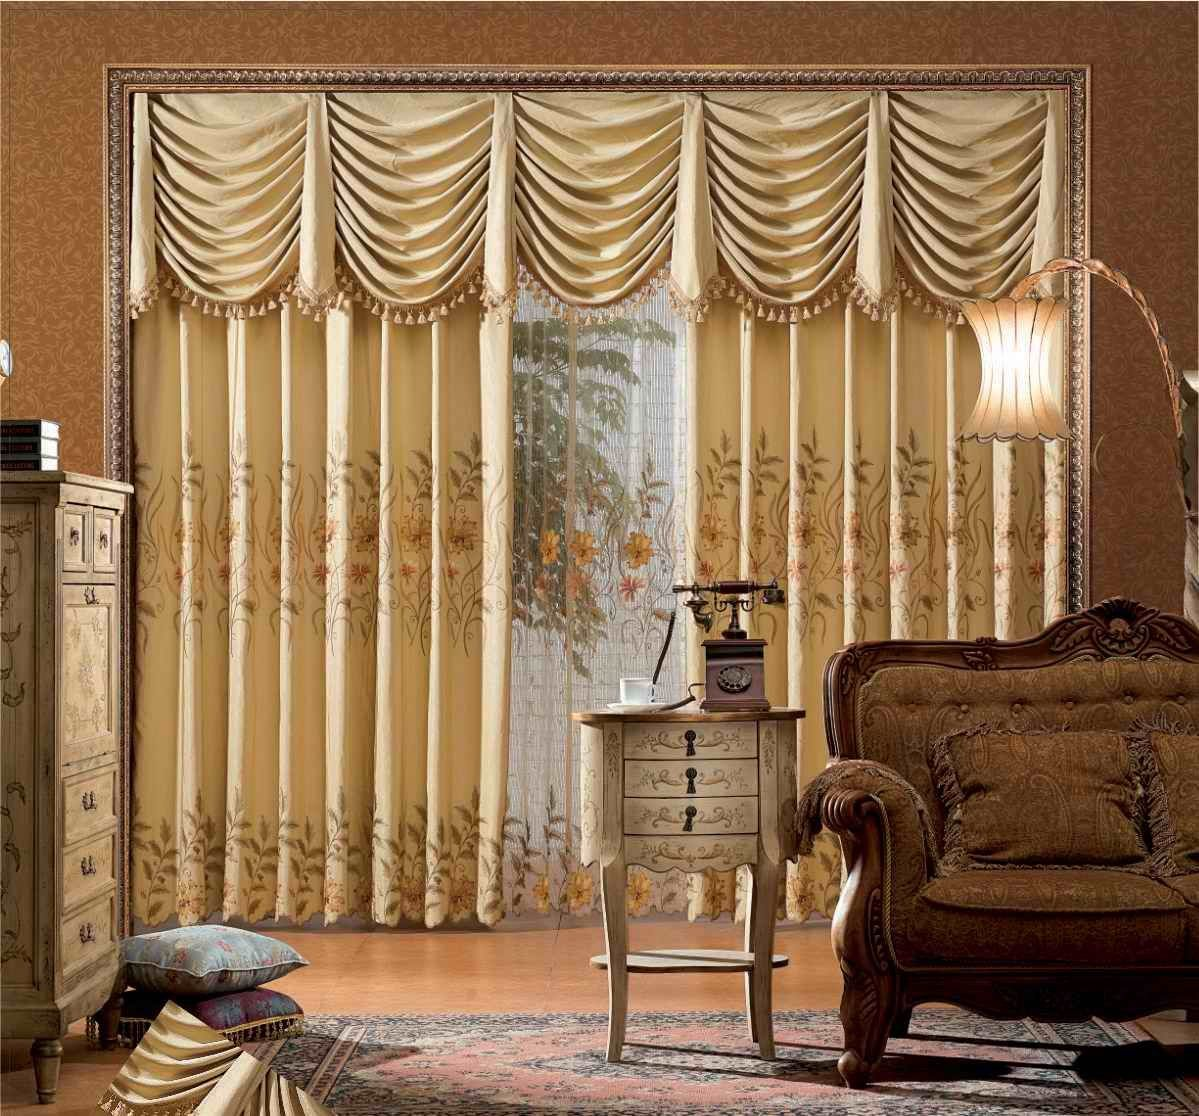 4 things you should do if you are making curtains for your living room interior design choosing the right curtains for your living room is important